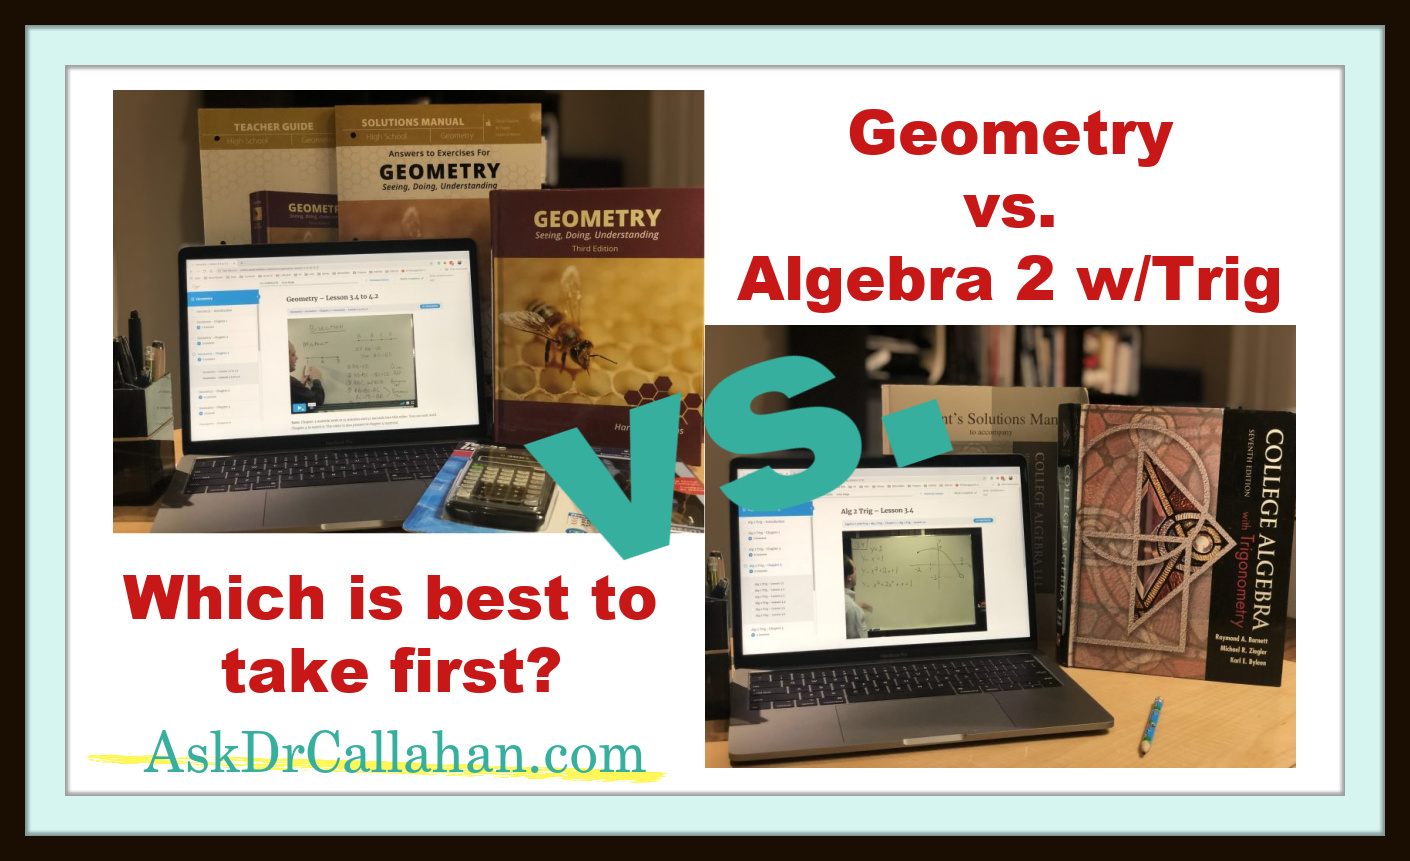 Geometry vs Alg2wTrig